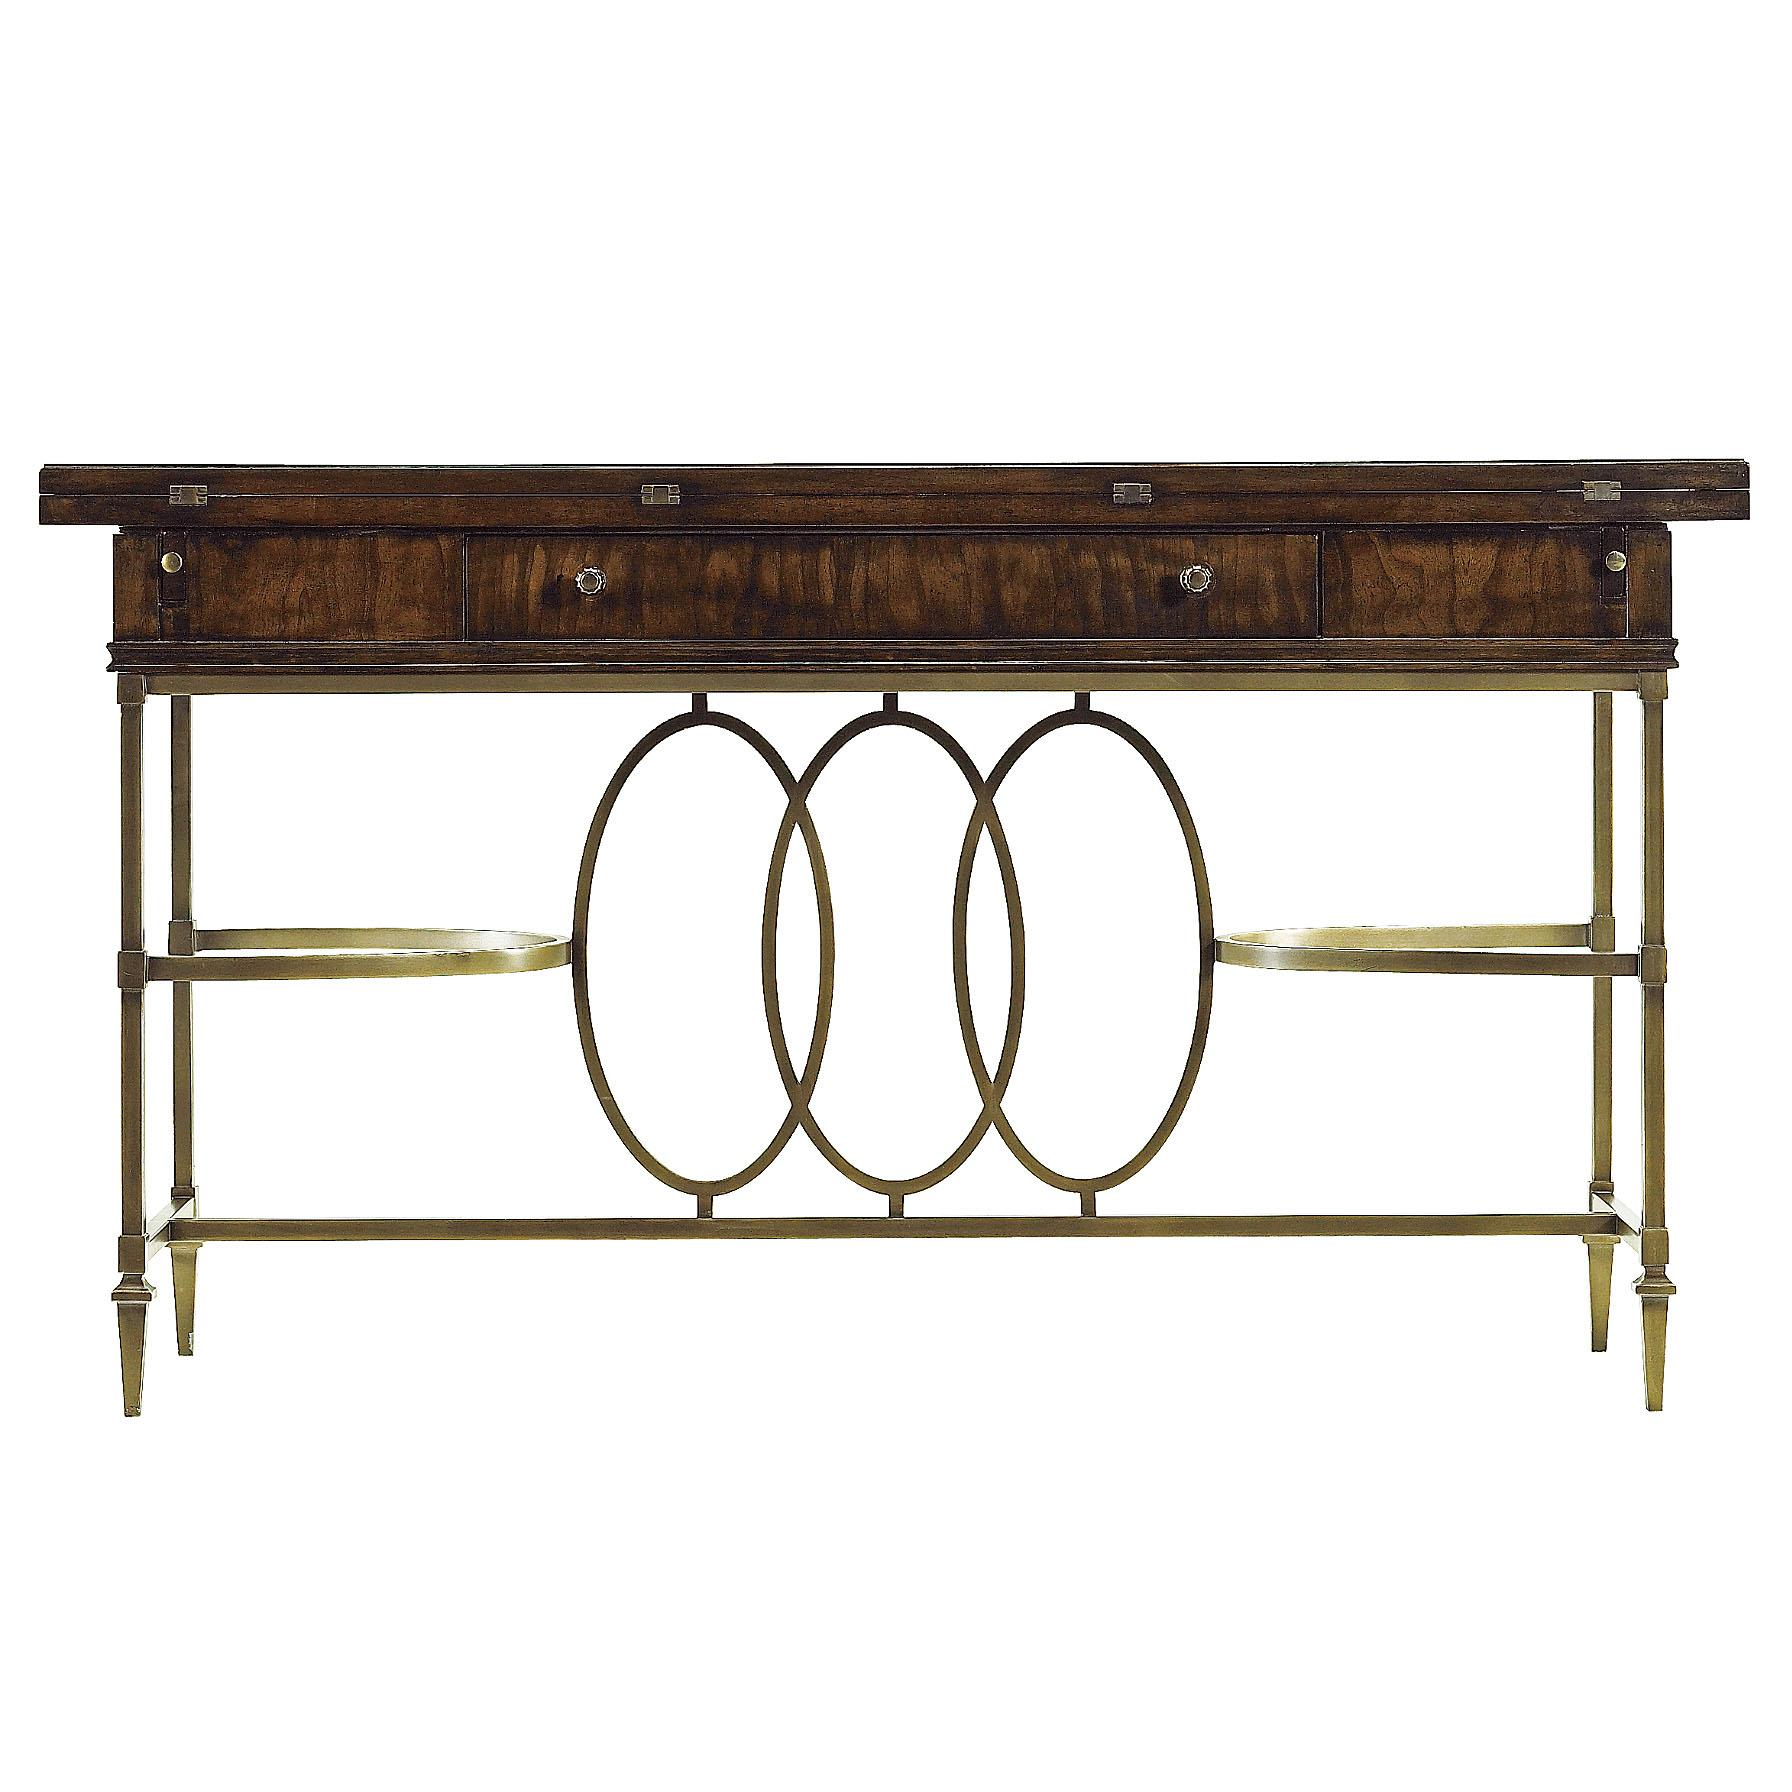 Stanley Furniture Avalon Heights Neo Deco Flip Top Console Table - Item Number: 193-15-06